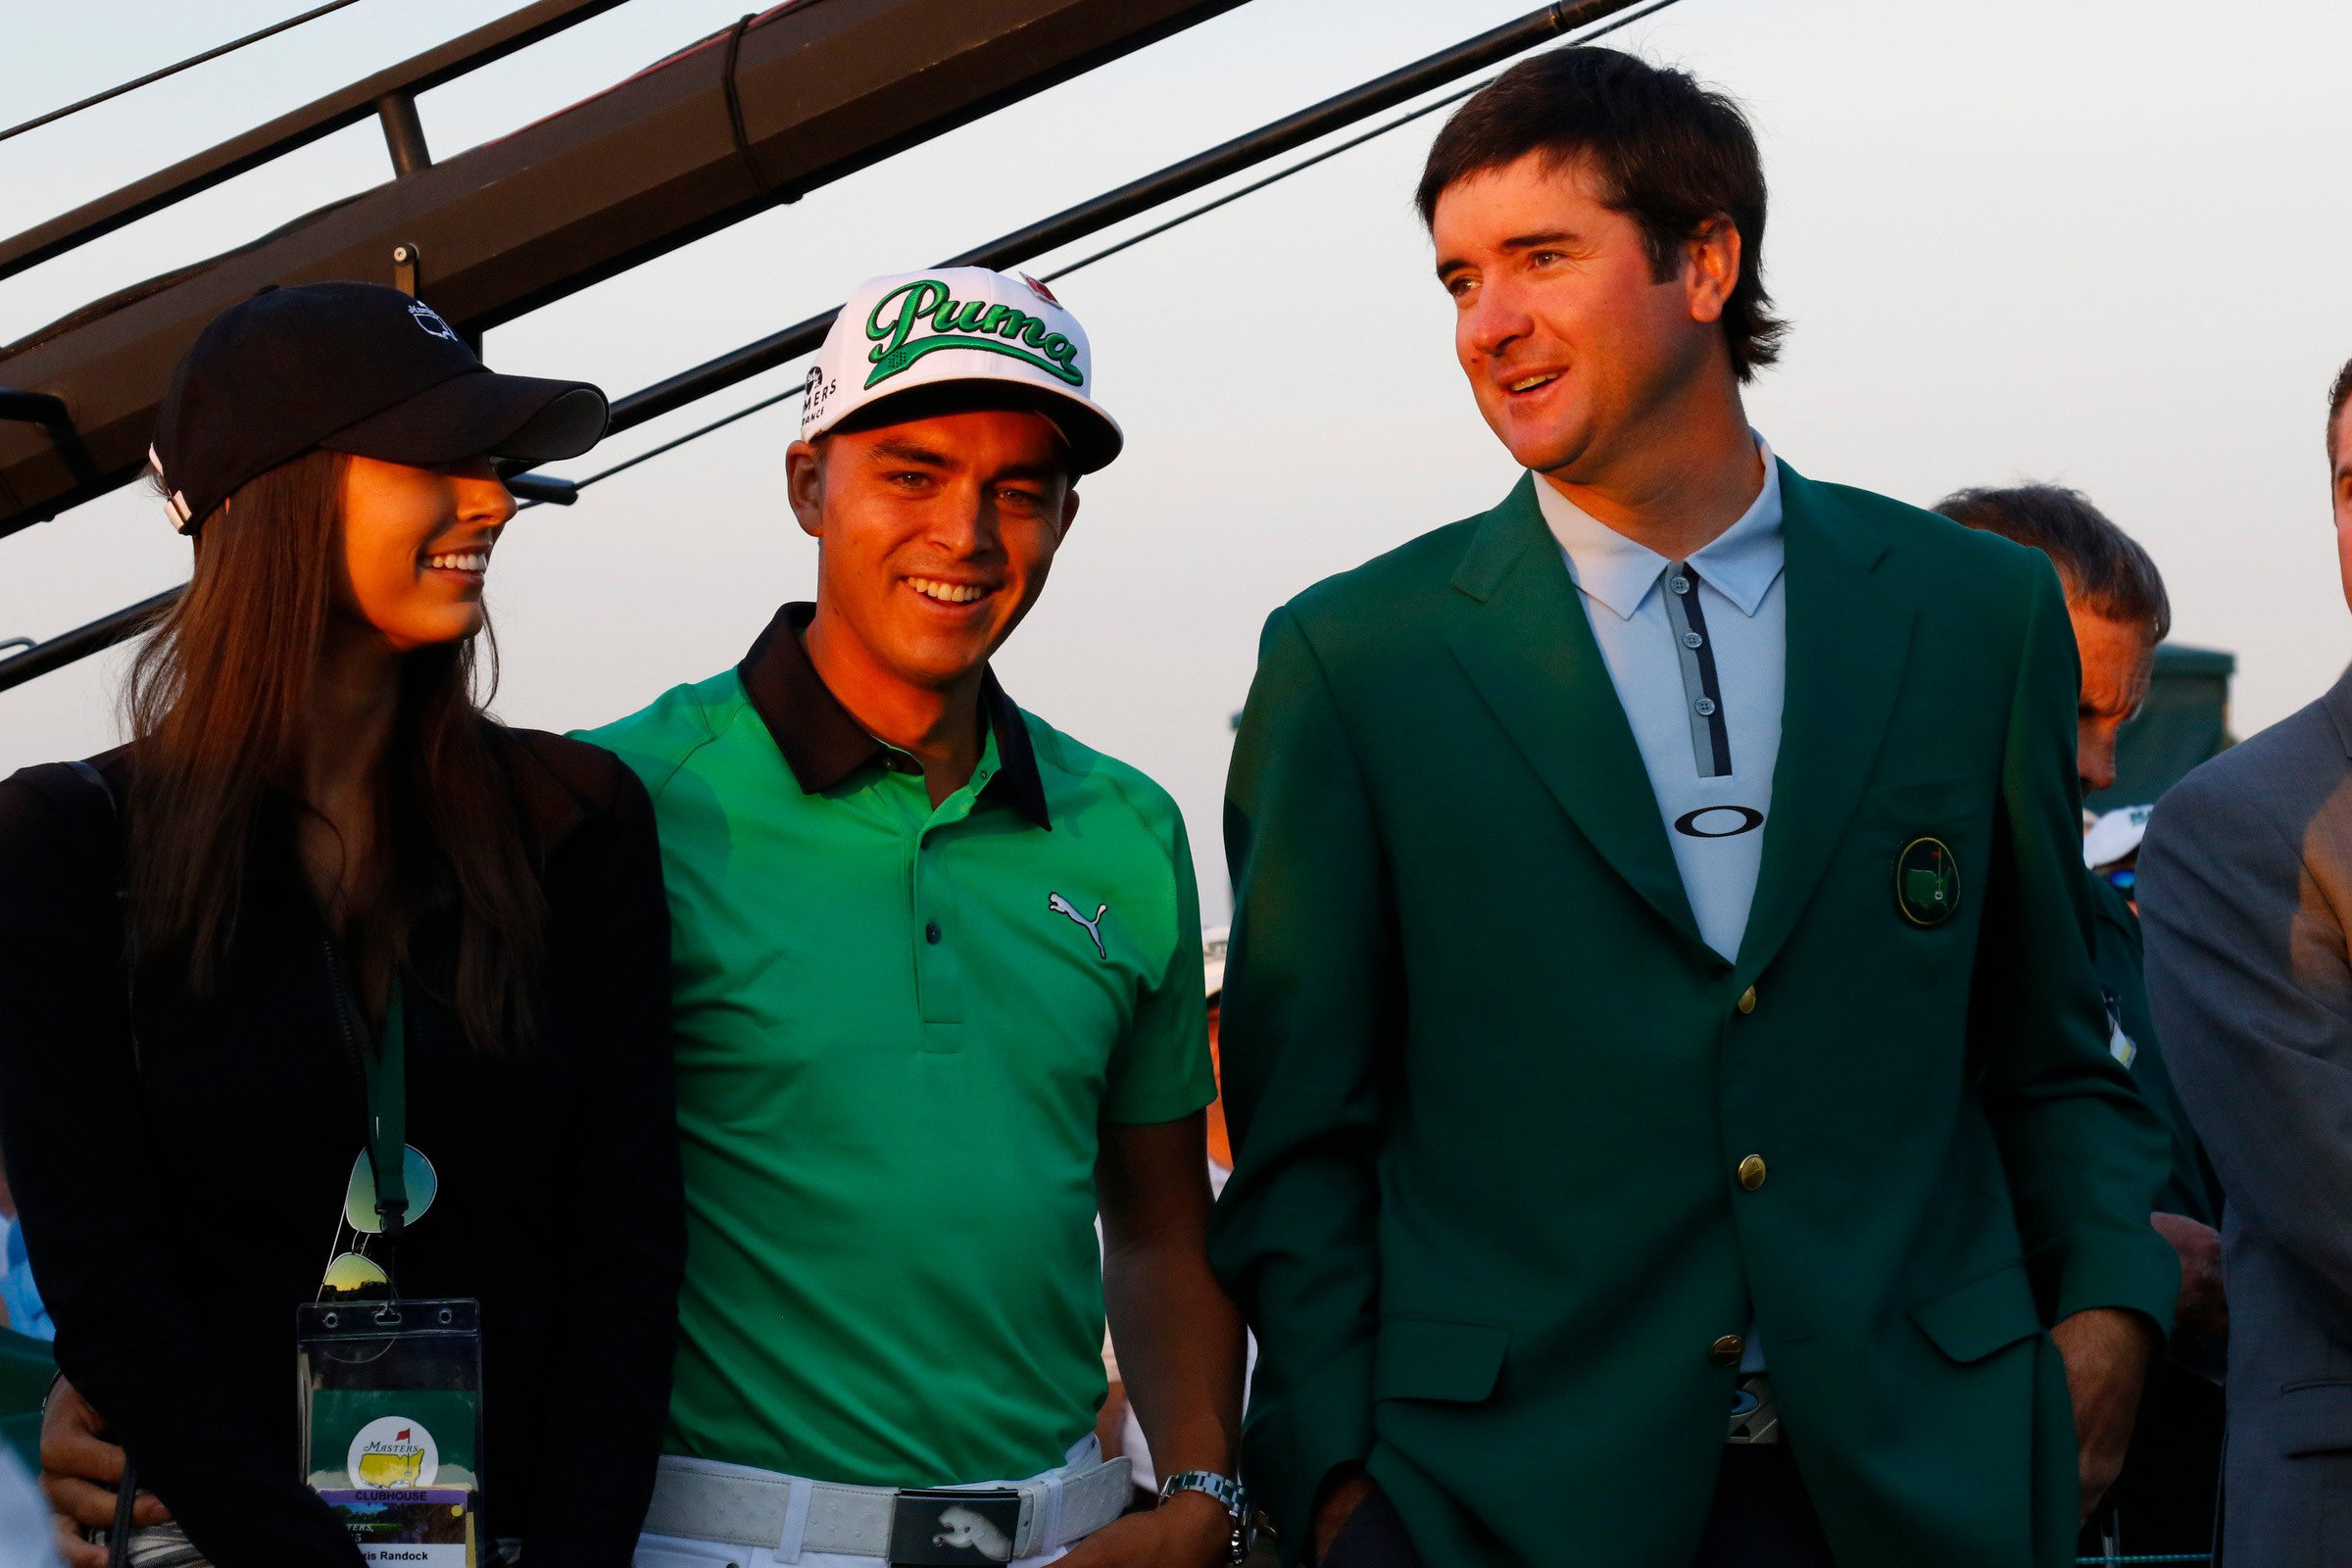 Rickie Fowler, girlfriend Alexis Randock and Bubba Watson watch the Big Three tee off Thursday Morning at Augusta National.